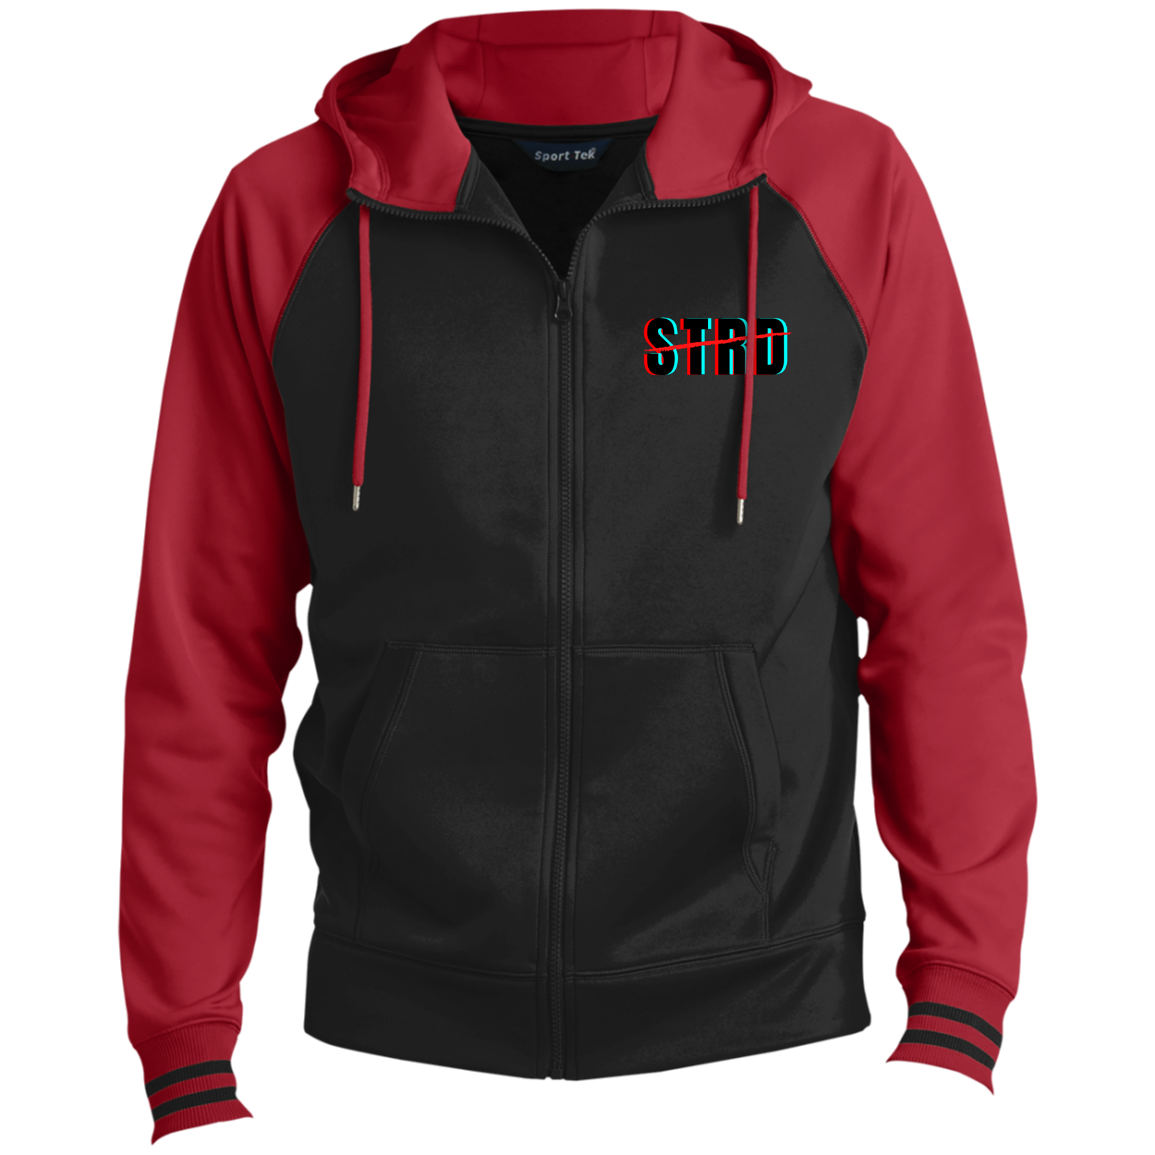 Men's Not STRD Full-Zip Hoodie